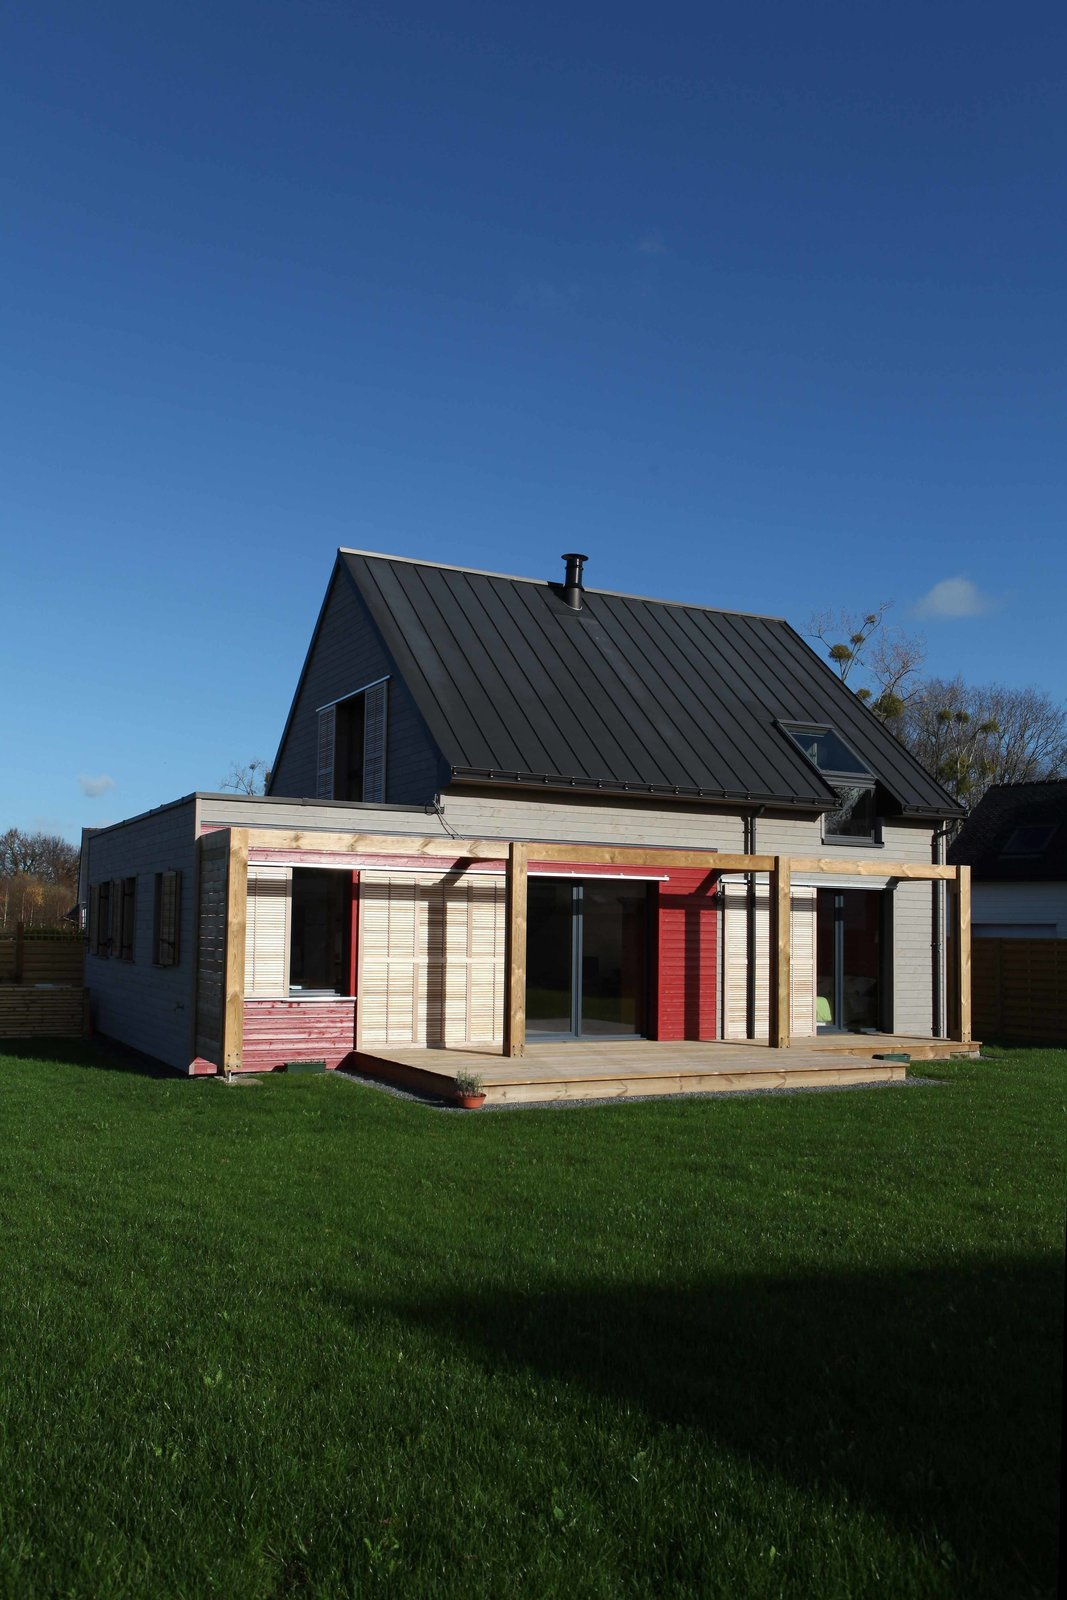 A solid wood exterior retains heat in the winter and keeps the house cool in summer.  Fantastic Examples of French Living by Allie Weiss